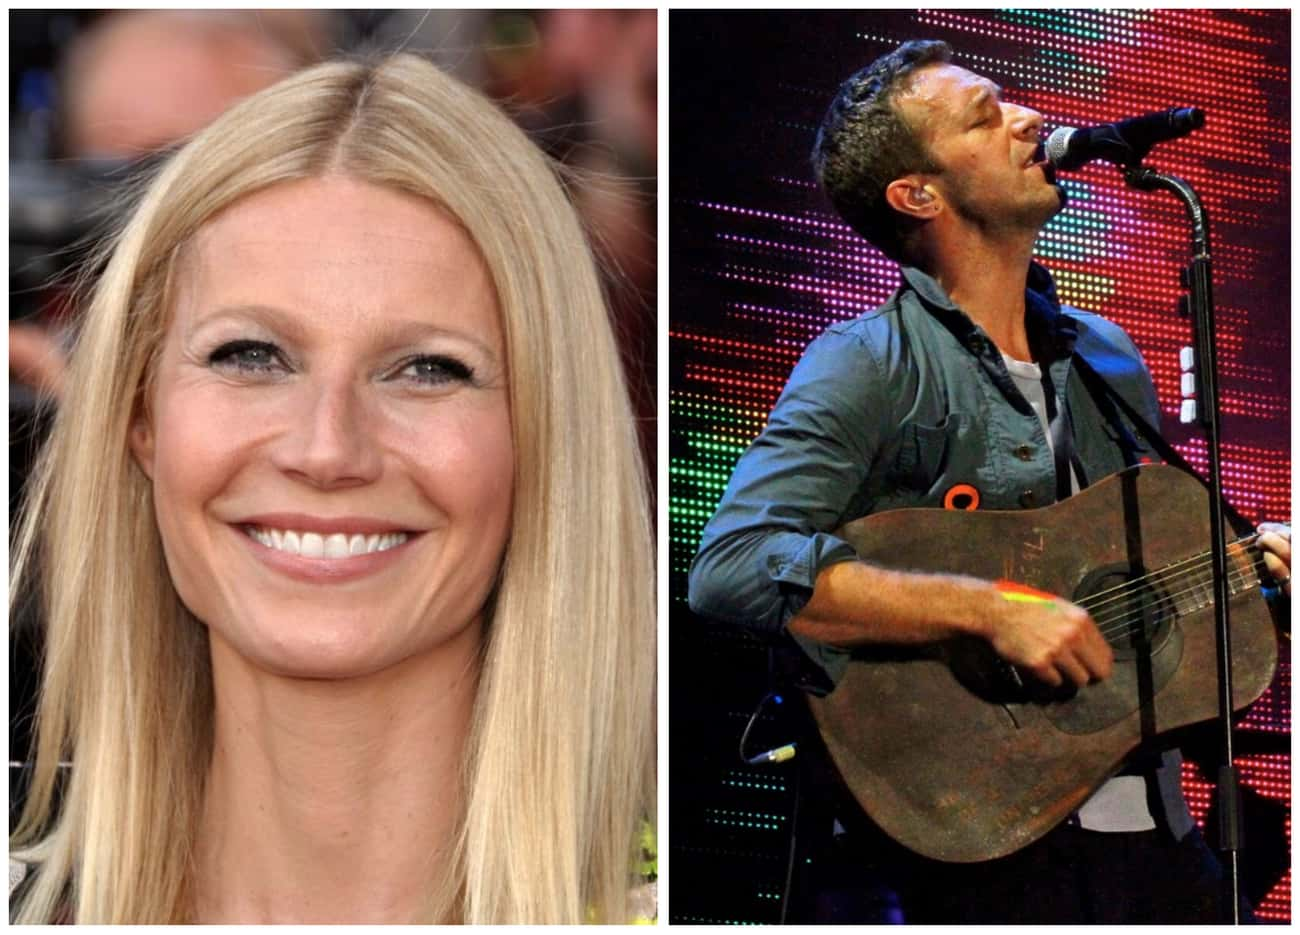 Gwyneth Paltrow And Chris Mart is listed (or ranked) 3 on the list Celebrities Who Broke Up But Still Remained Close With Their Exes